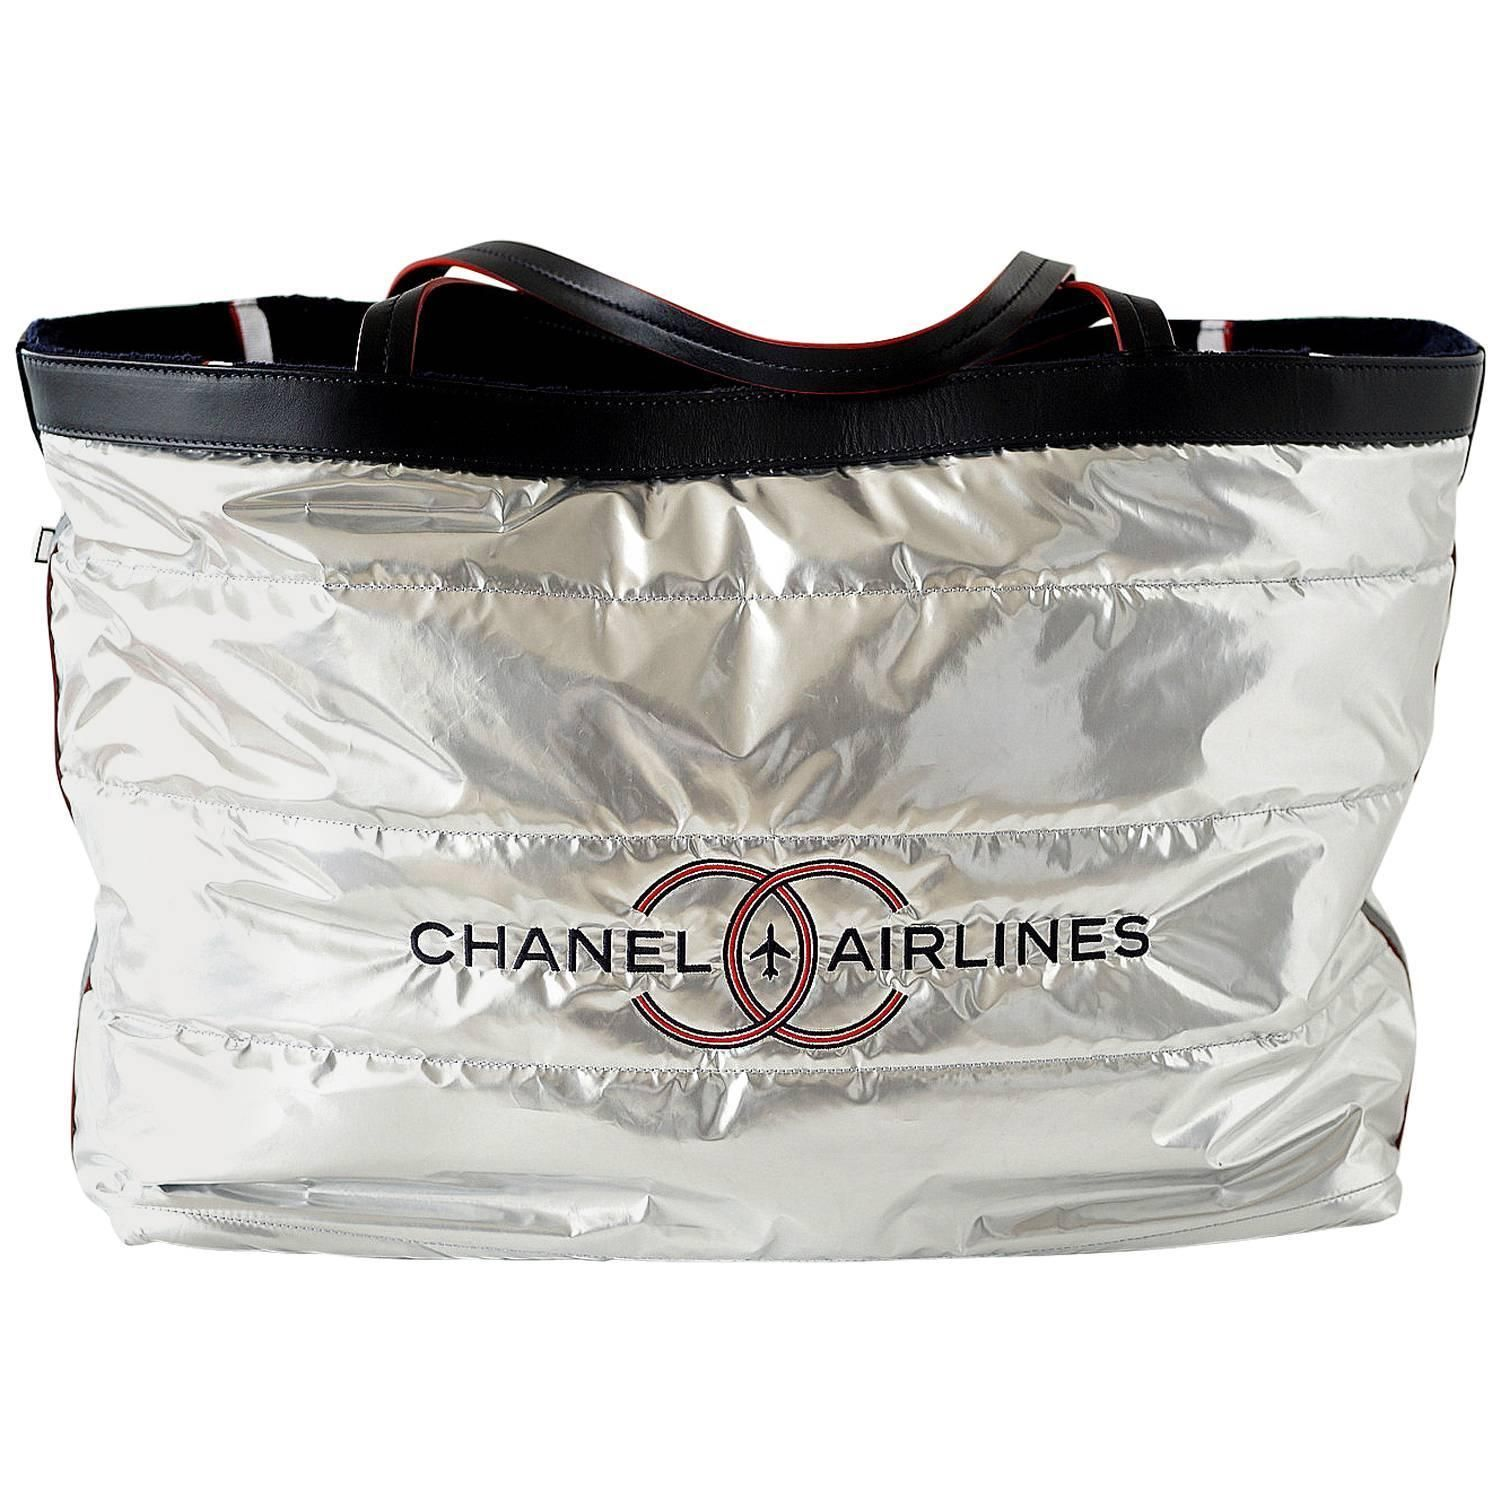 48300f9d5054 Chanel Airlines Limited Edition Reversible Tote Bag with Beach Towel ...